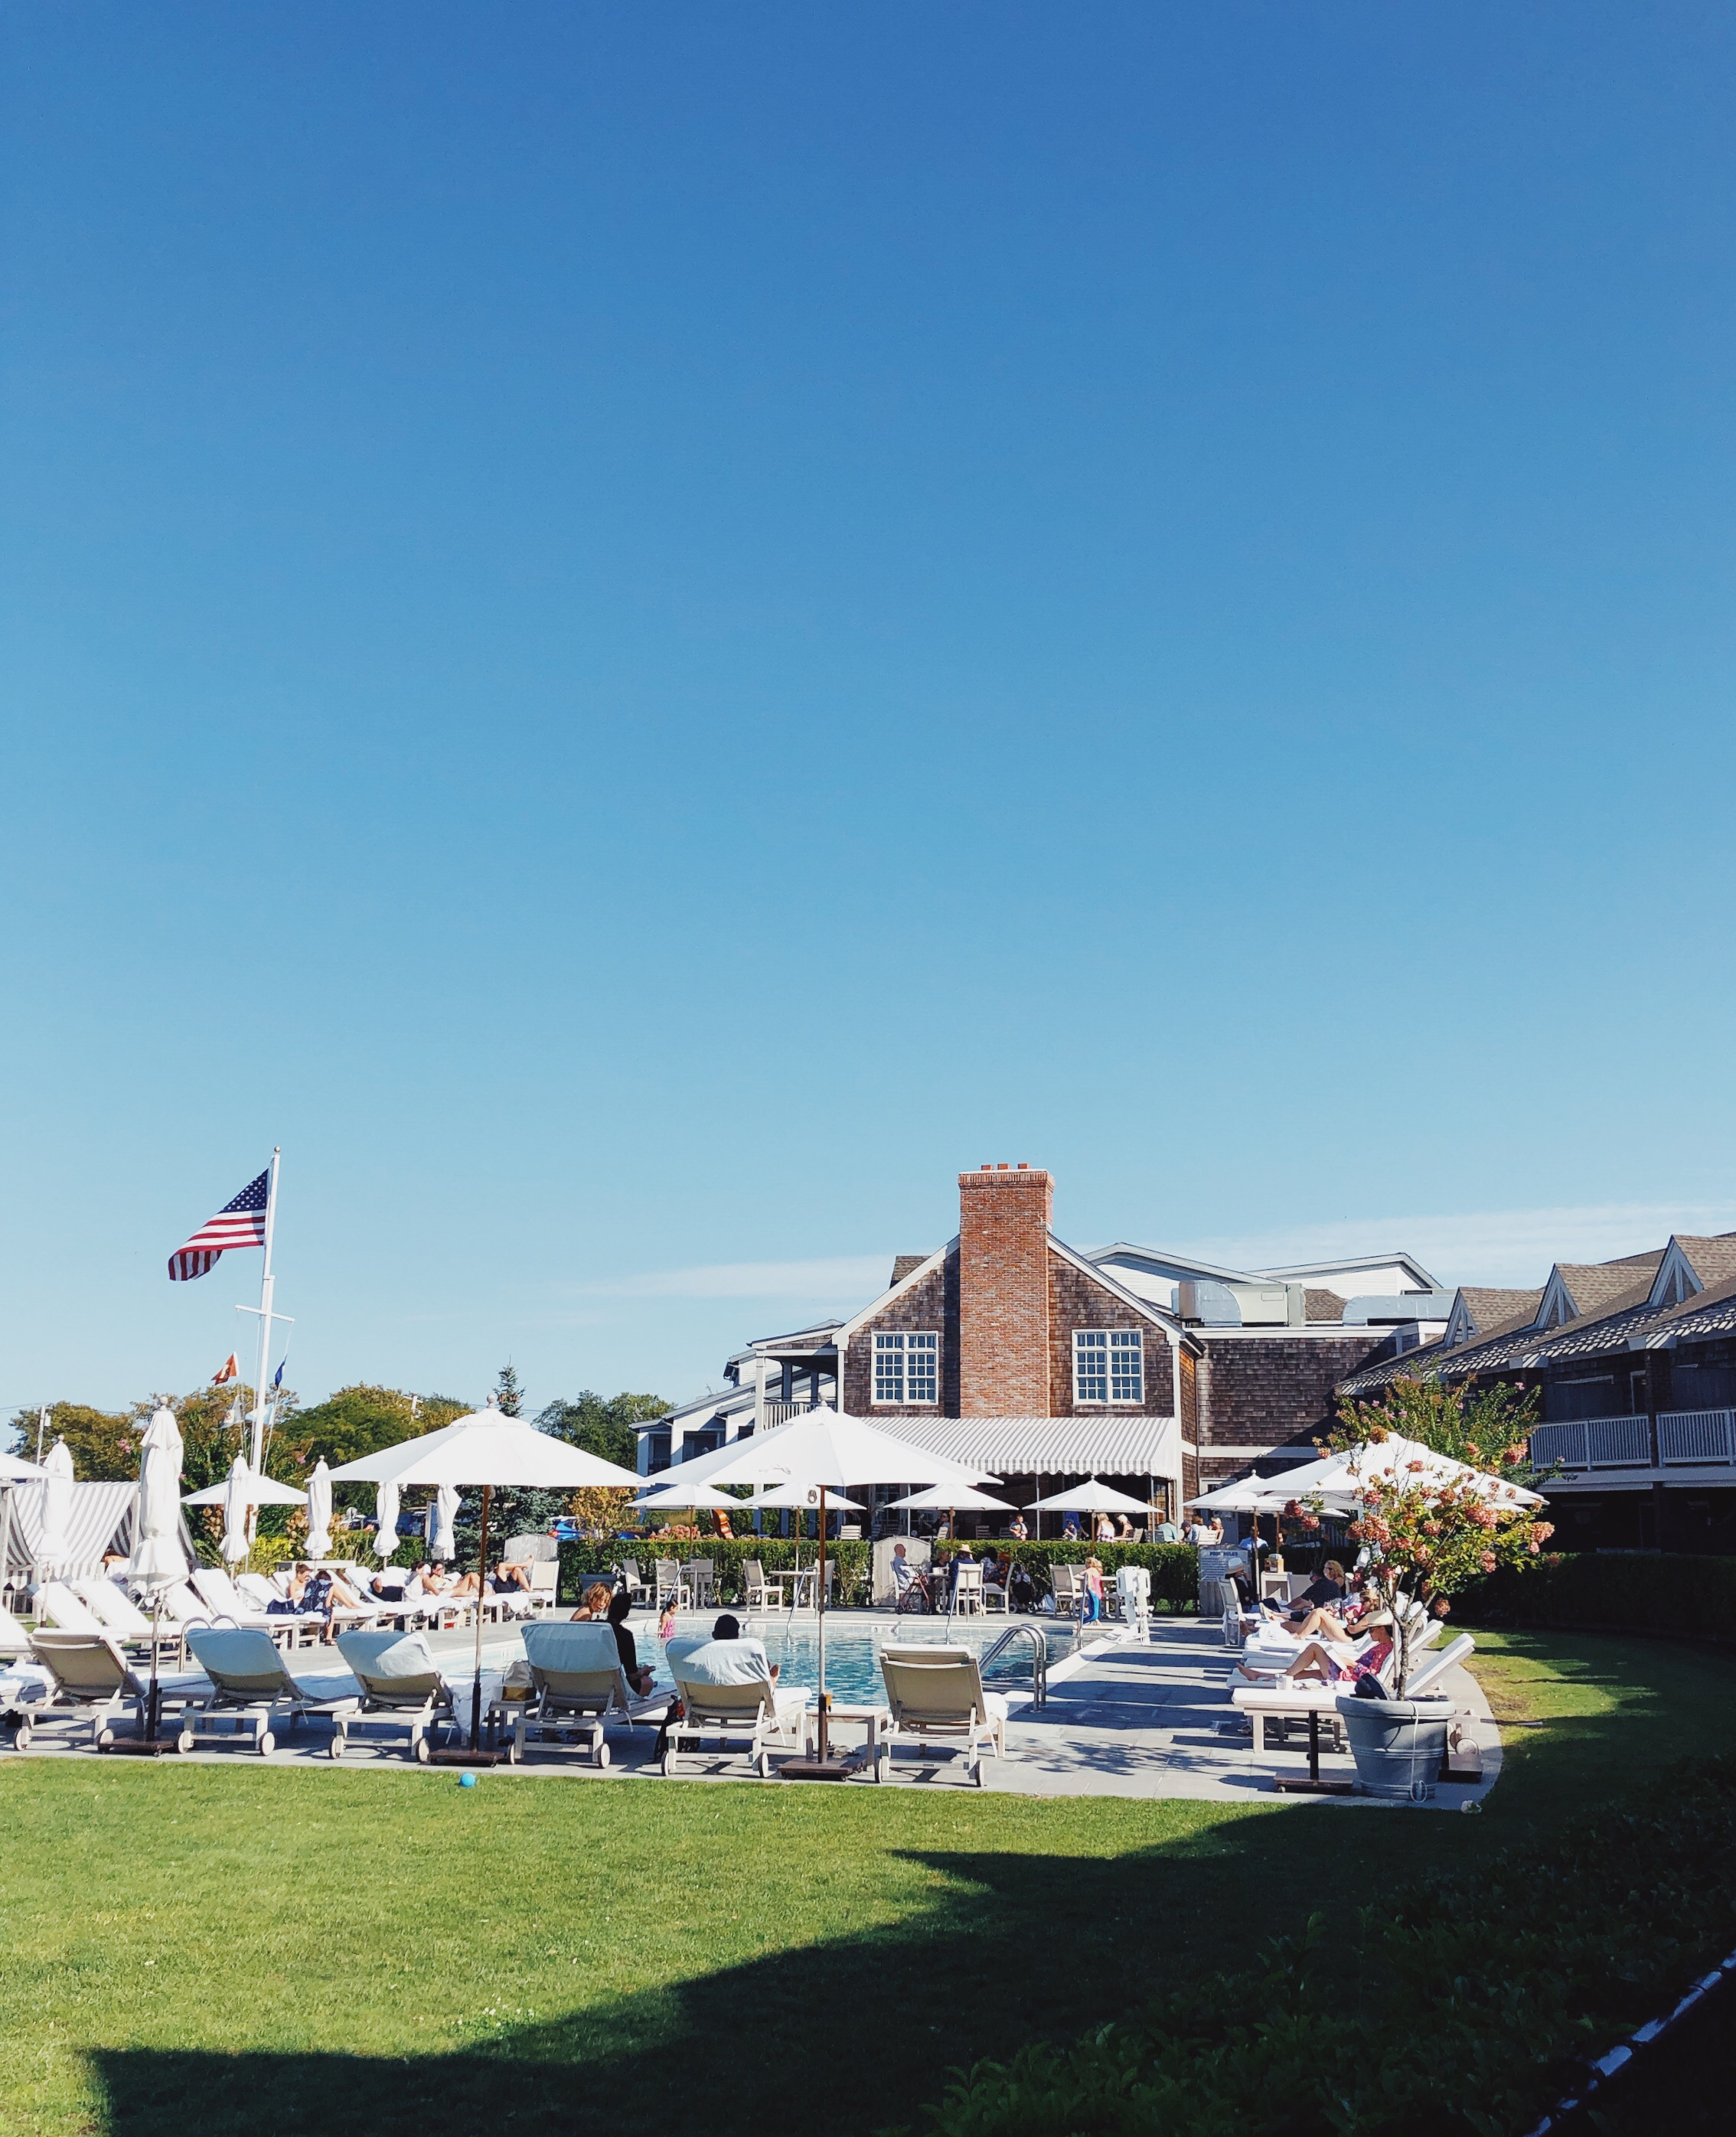 Barons cove in sag harbor new york.jpg